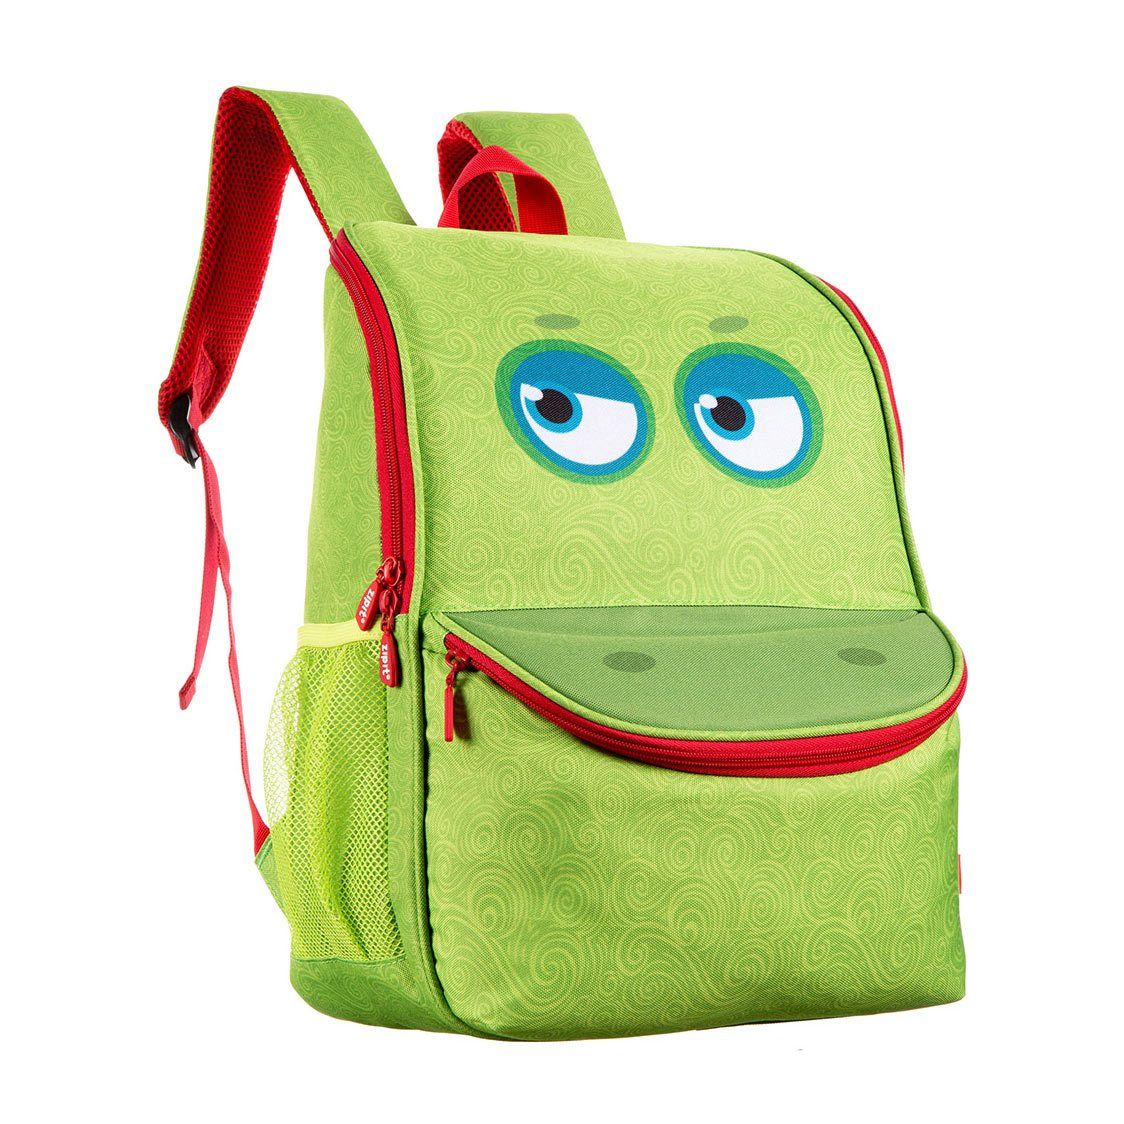 Smart Pencil Cases And Bags For Cool Students 13